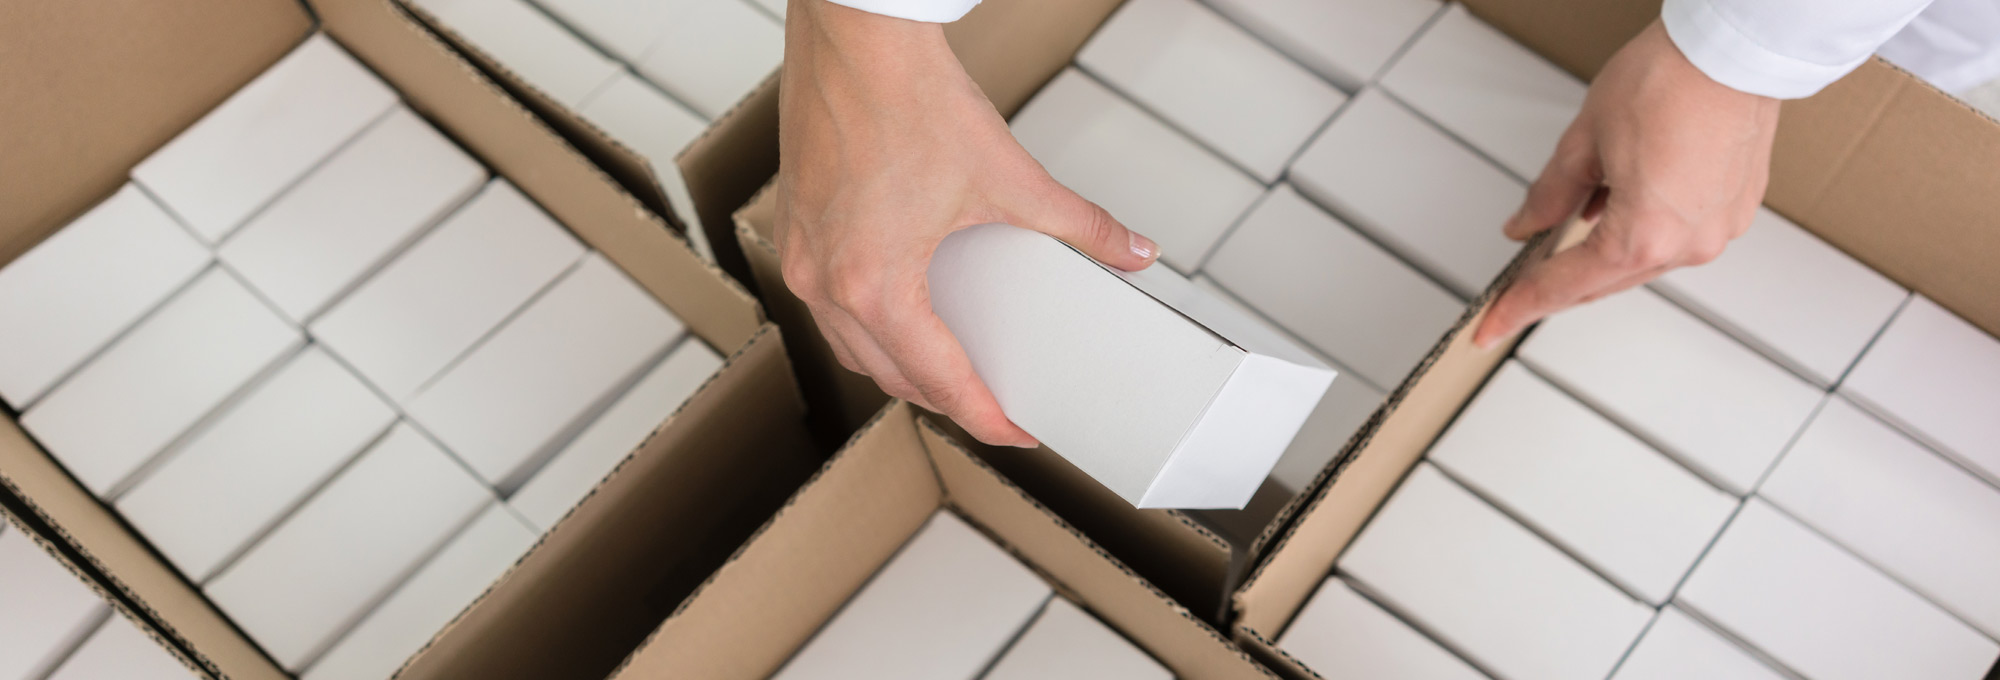 Packaging Adhesive Supplier